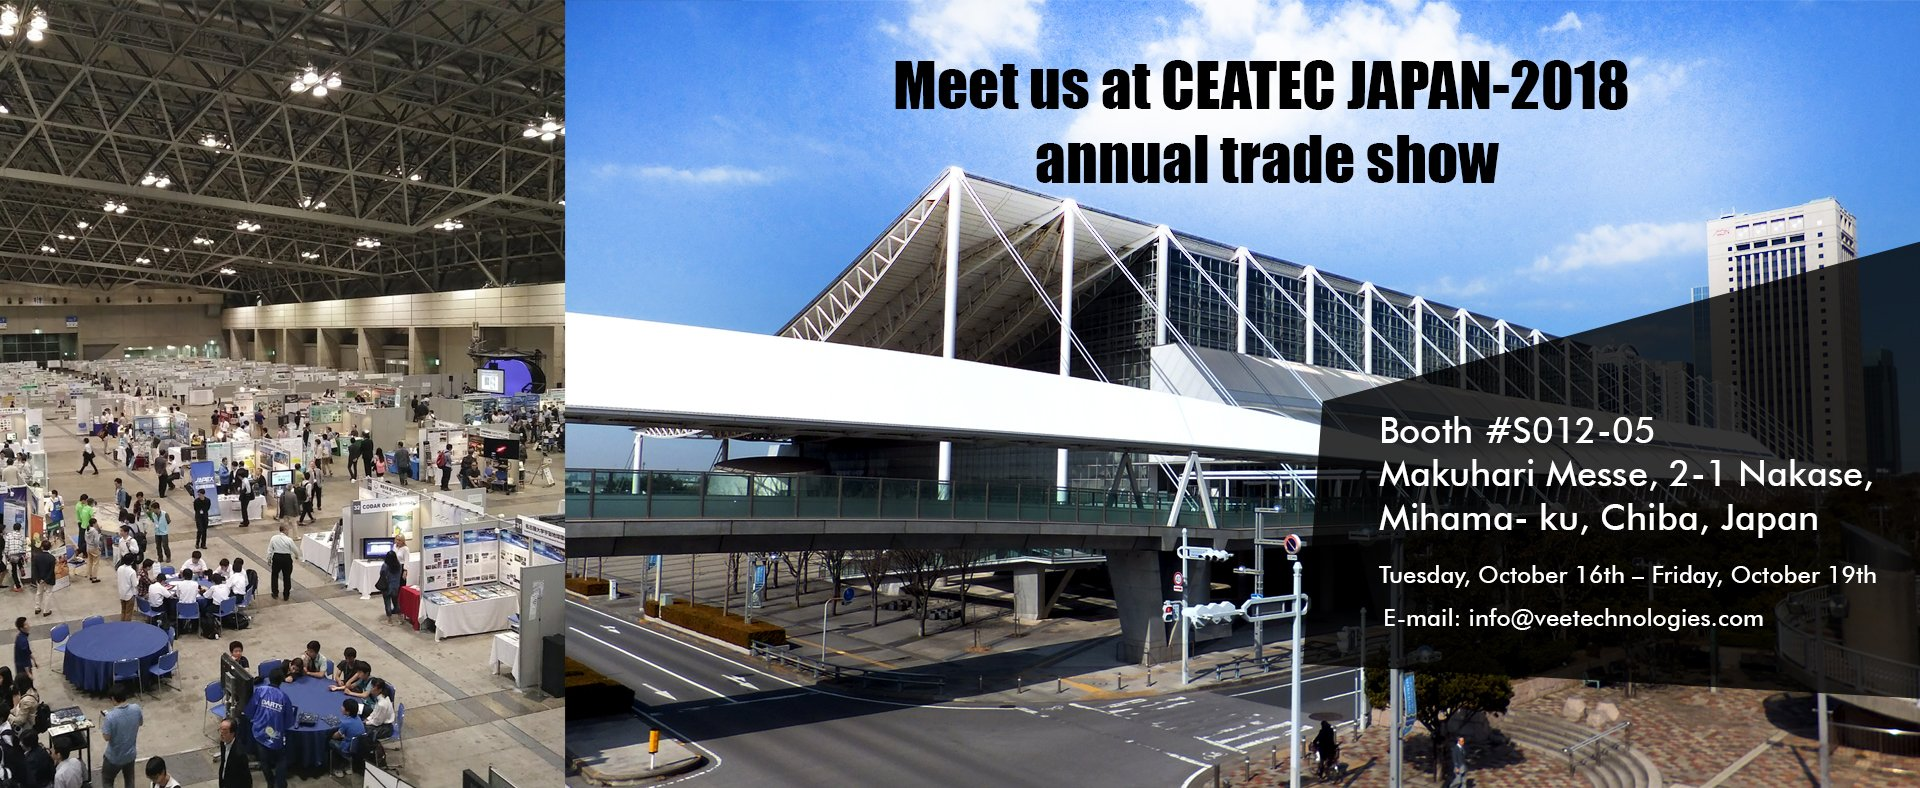 CEATEC JAPAN-2018 Annual Trade Show